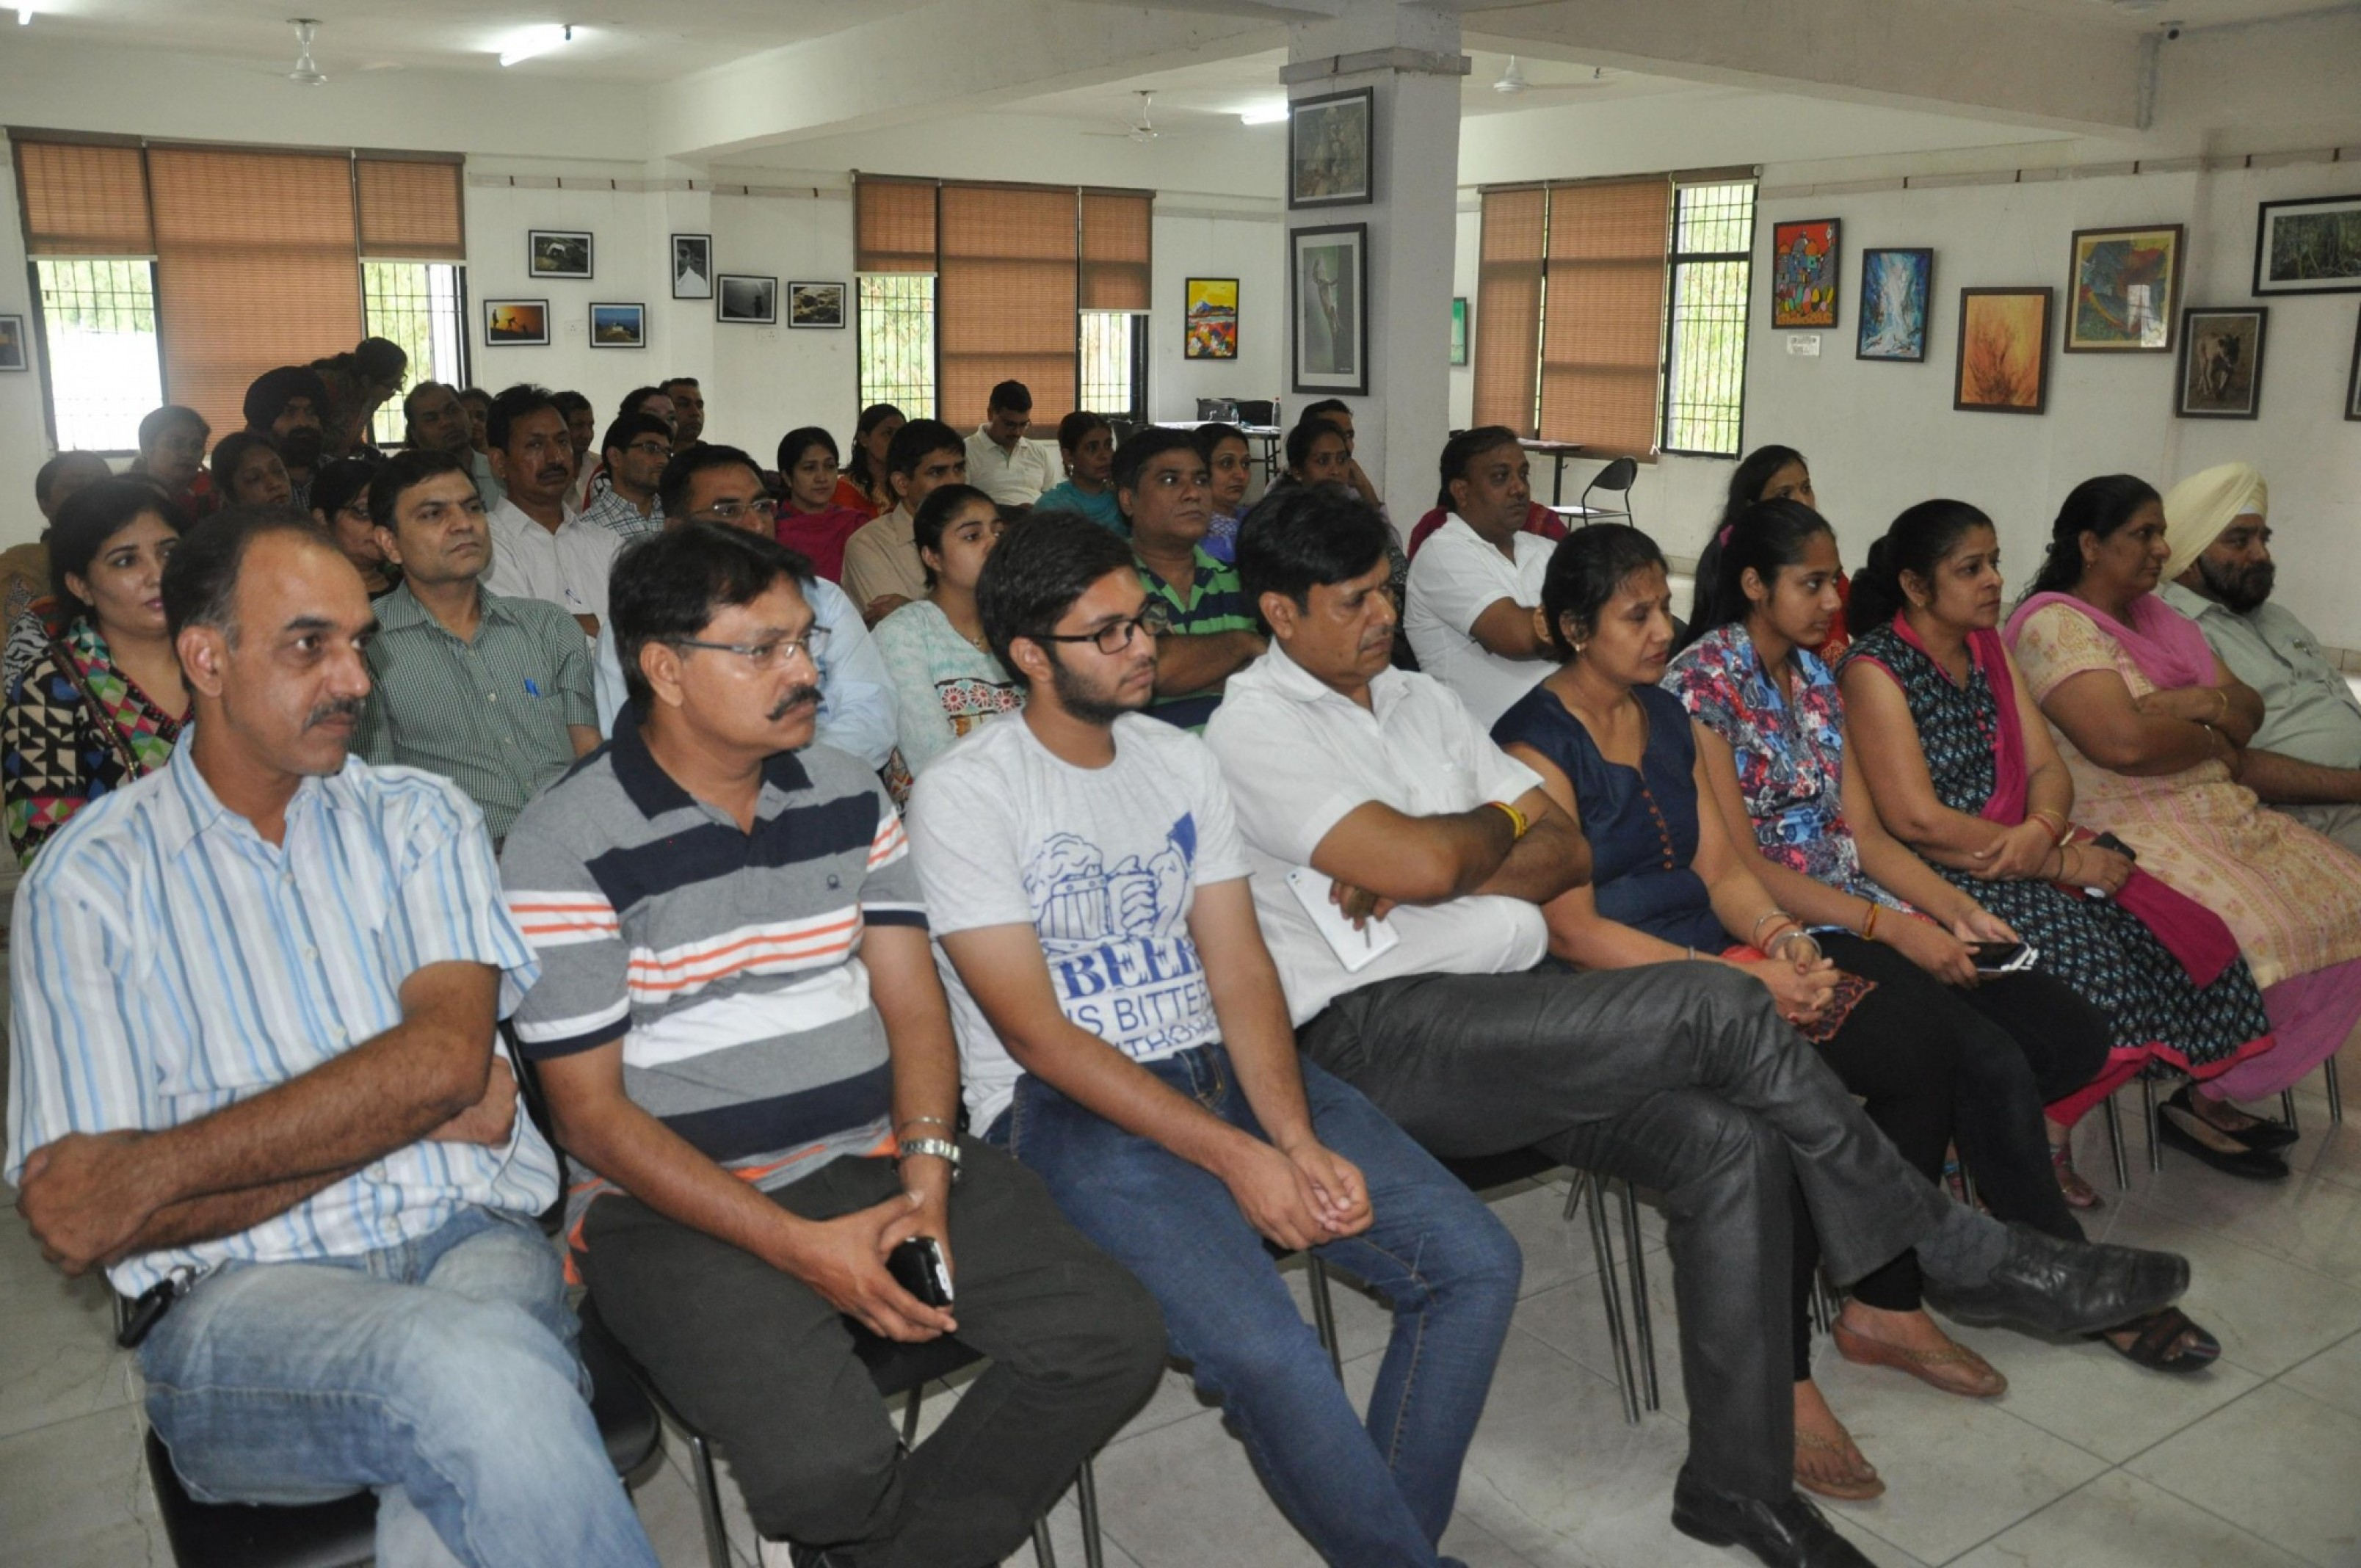 School in association with ICS (Institute of Career Studies)-Lucknow organized a 4-day career counseling program from 9th-12th July for students of grade IX-XII. ICS is a career counseling organization with an experience of over two decades in providing career guidance as well as conducting various educational and training programmes. The […]